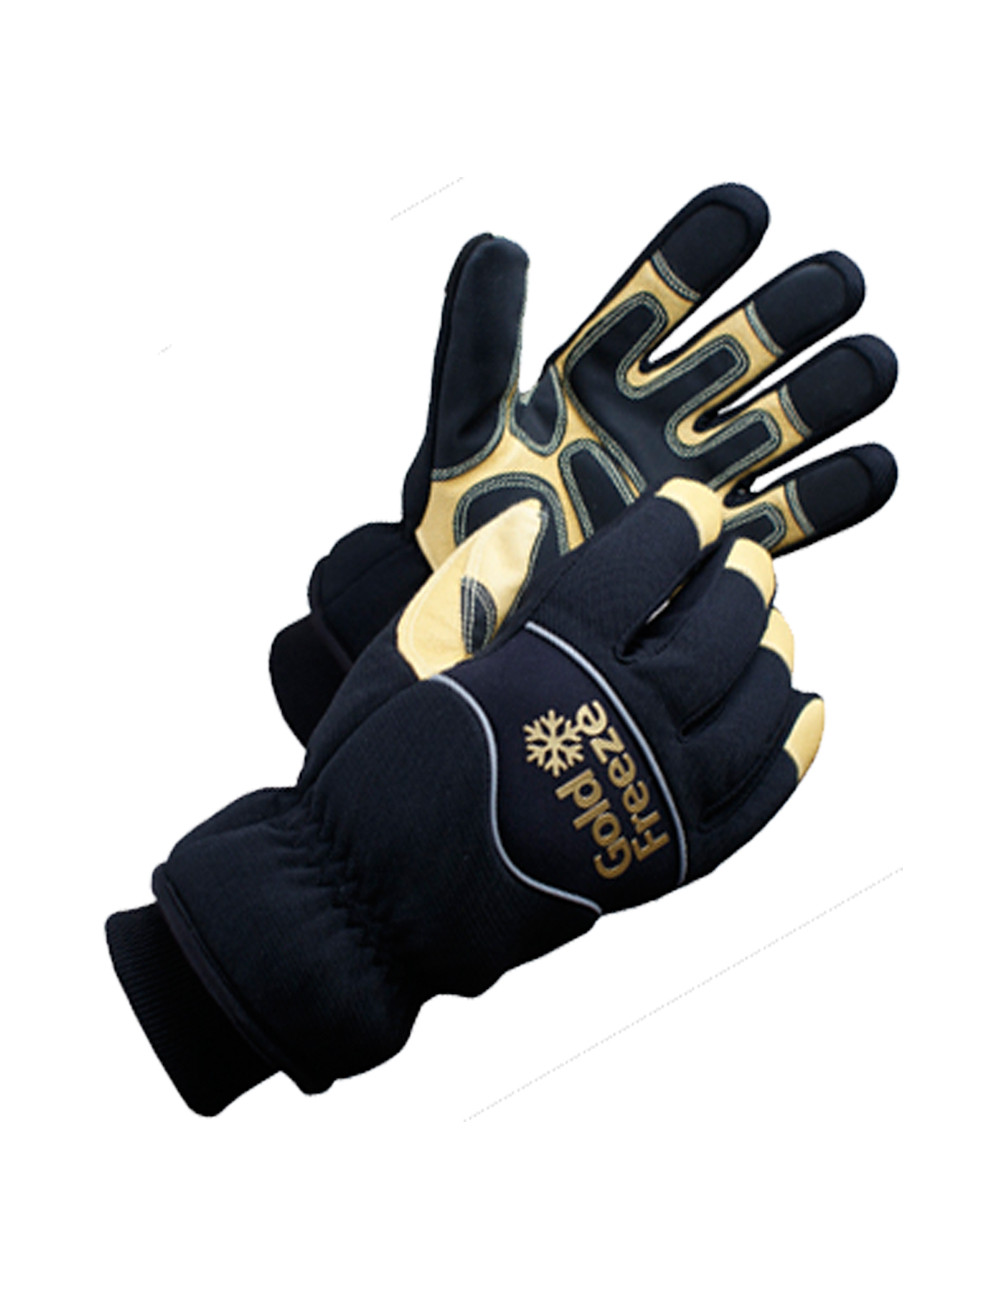 Gold Freeze XTREME COLDSTORE Handschuhen